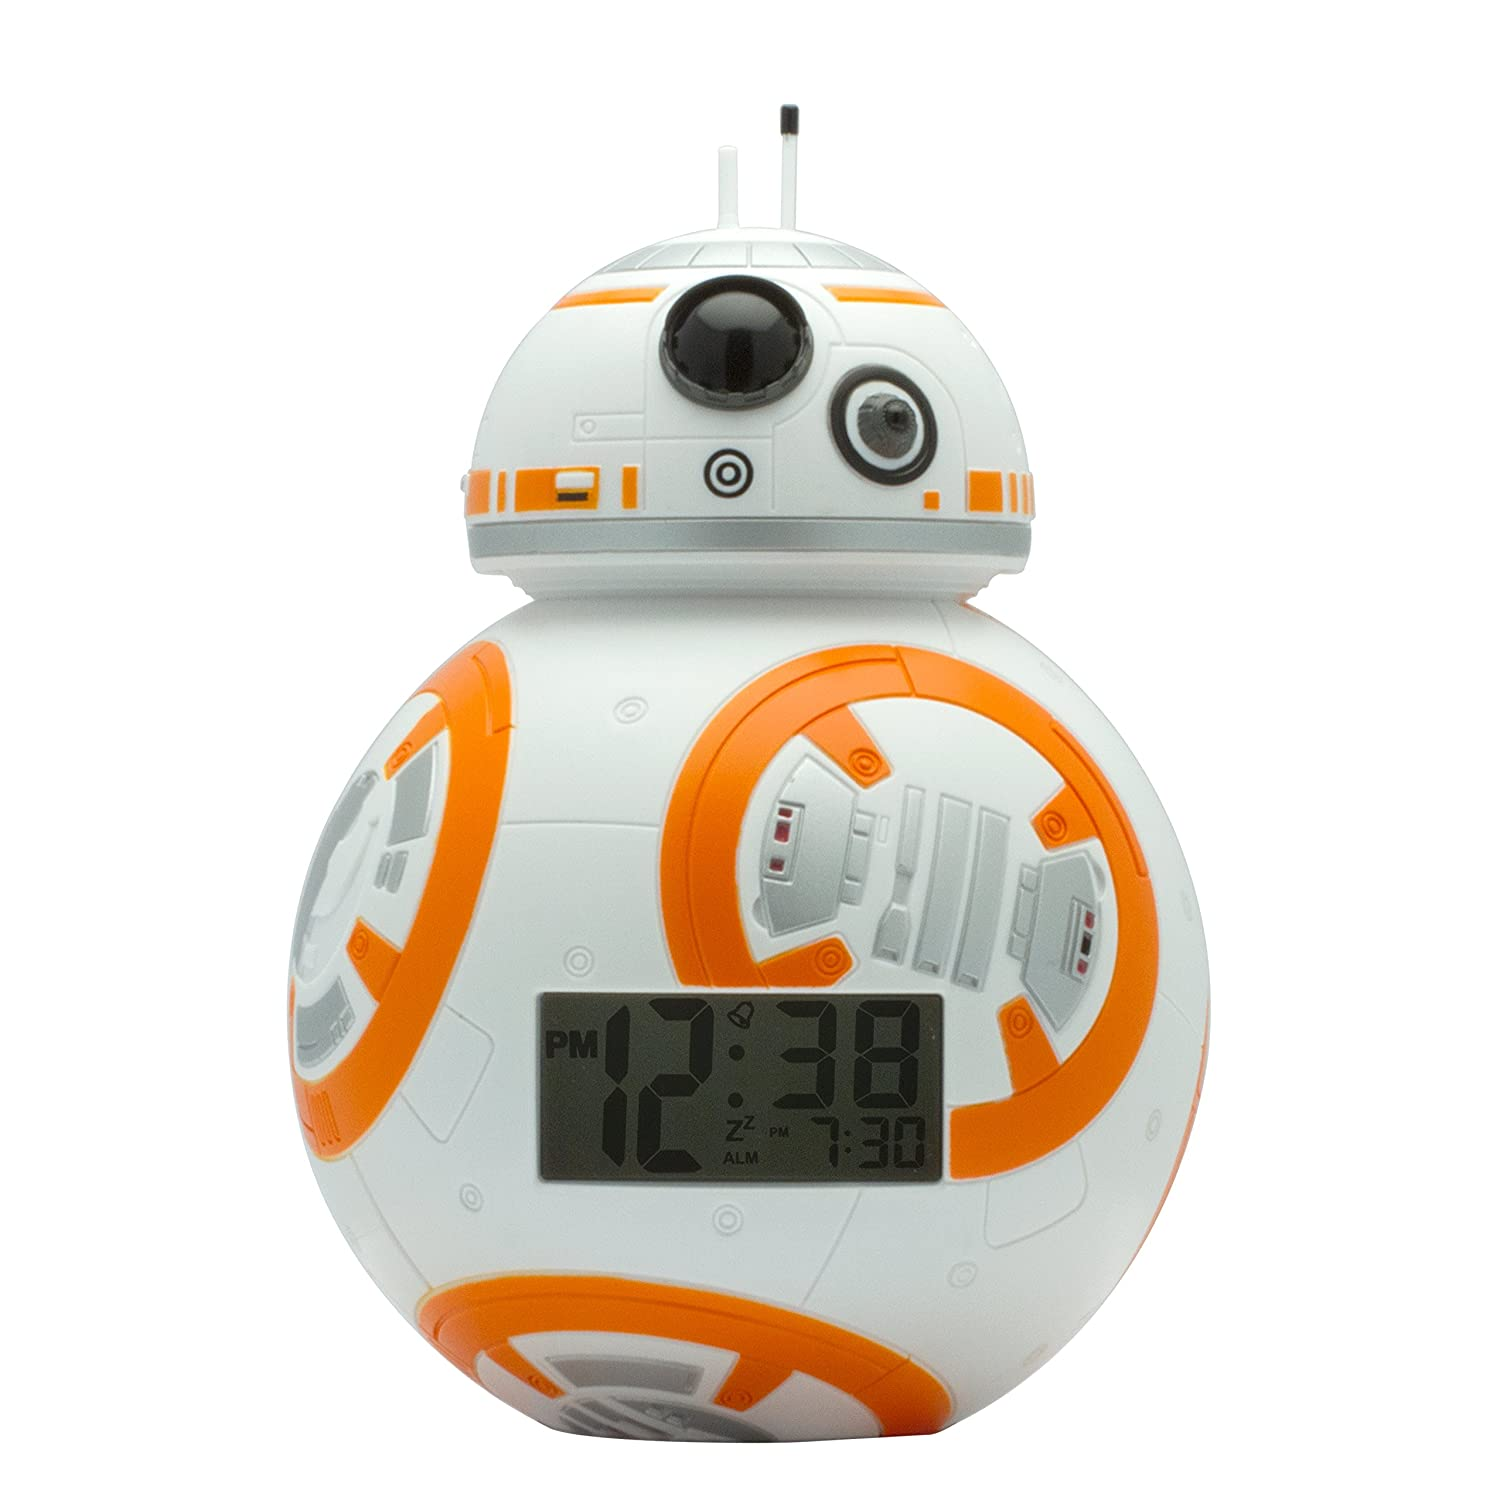 BulbBotz Star Wars 2020503 BB-8 Kids Light Up Alarm Clock | white/orange | plastic | 7.5 inches tall | LCD display | boy girl | official ClicTime